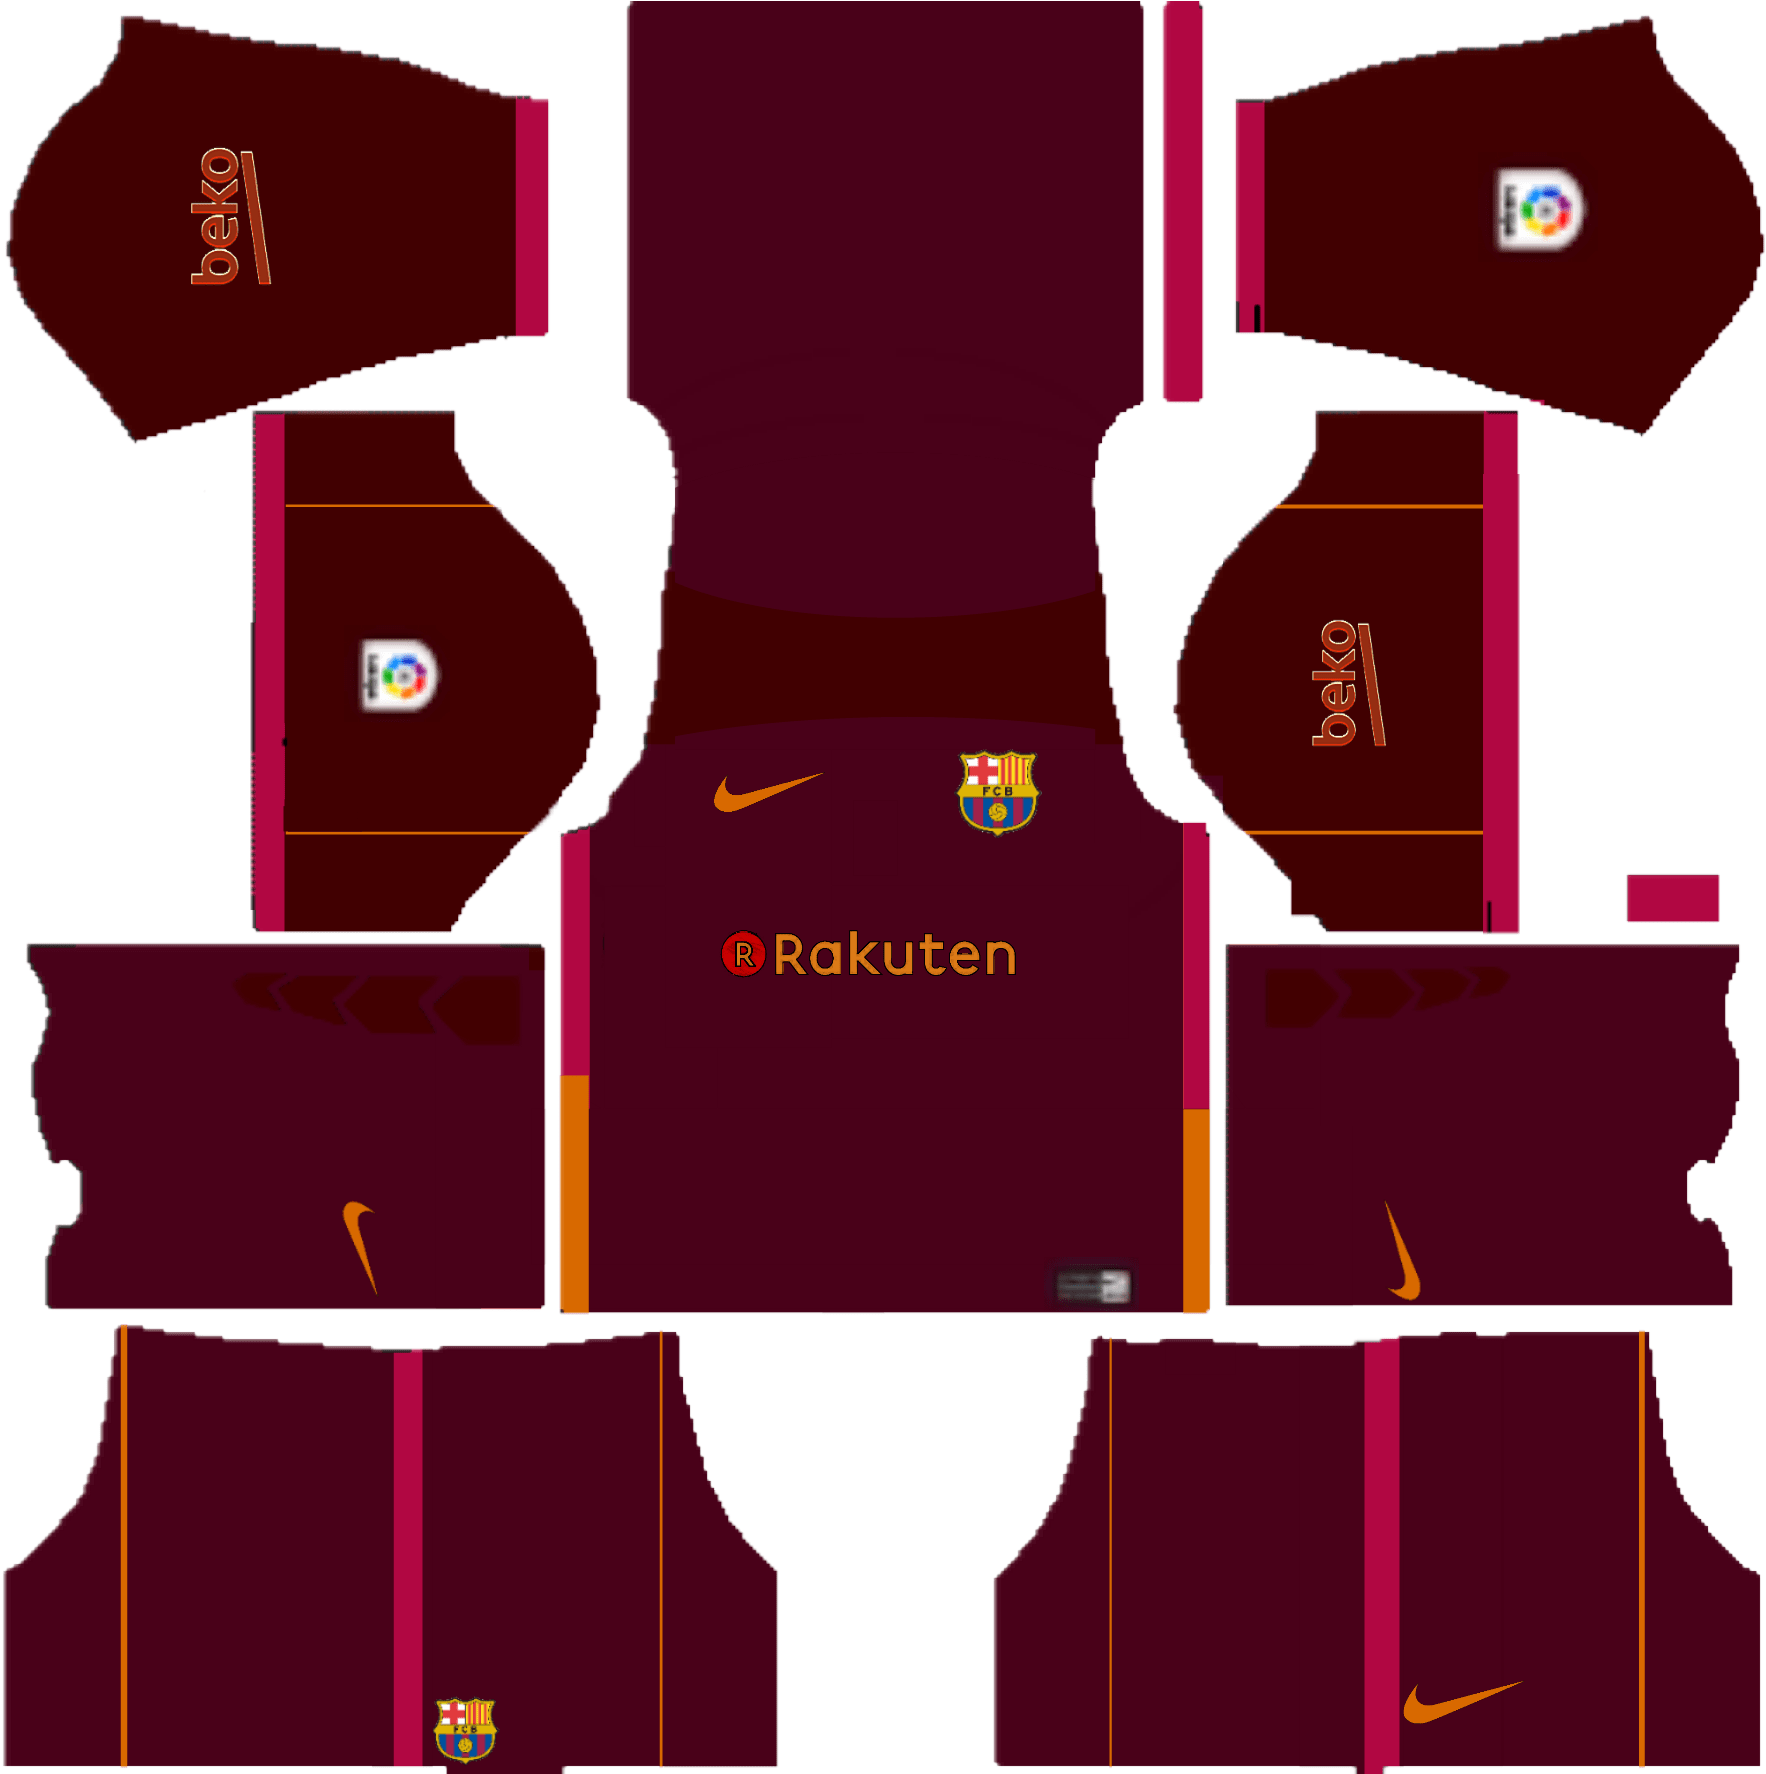 Download Dls 18 Kit Barcelona Kuchalana Barcelona Logo Fts.